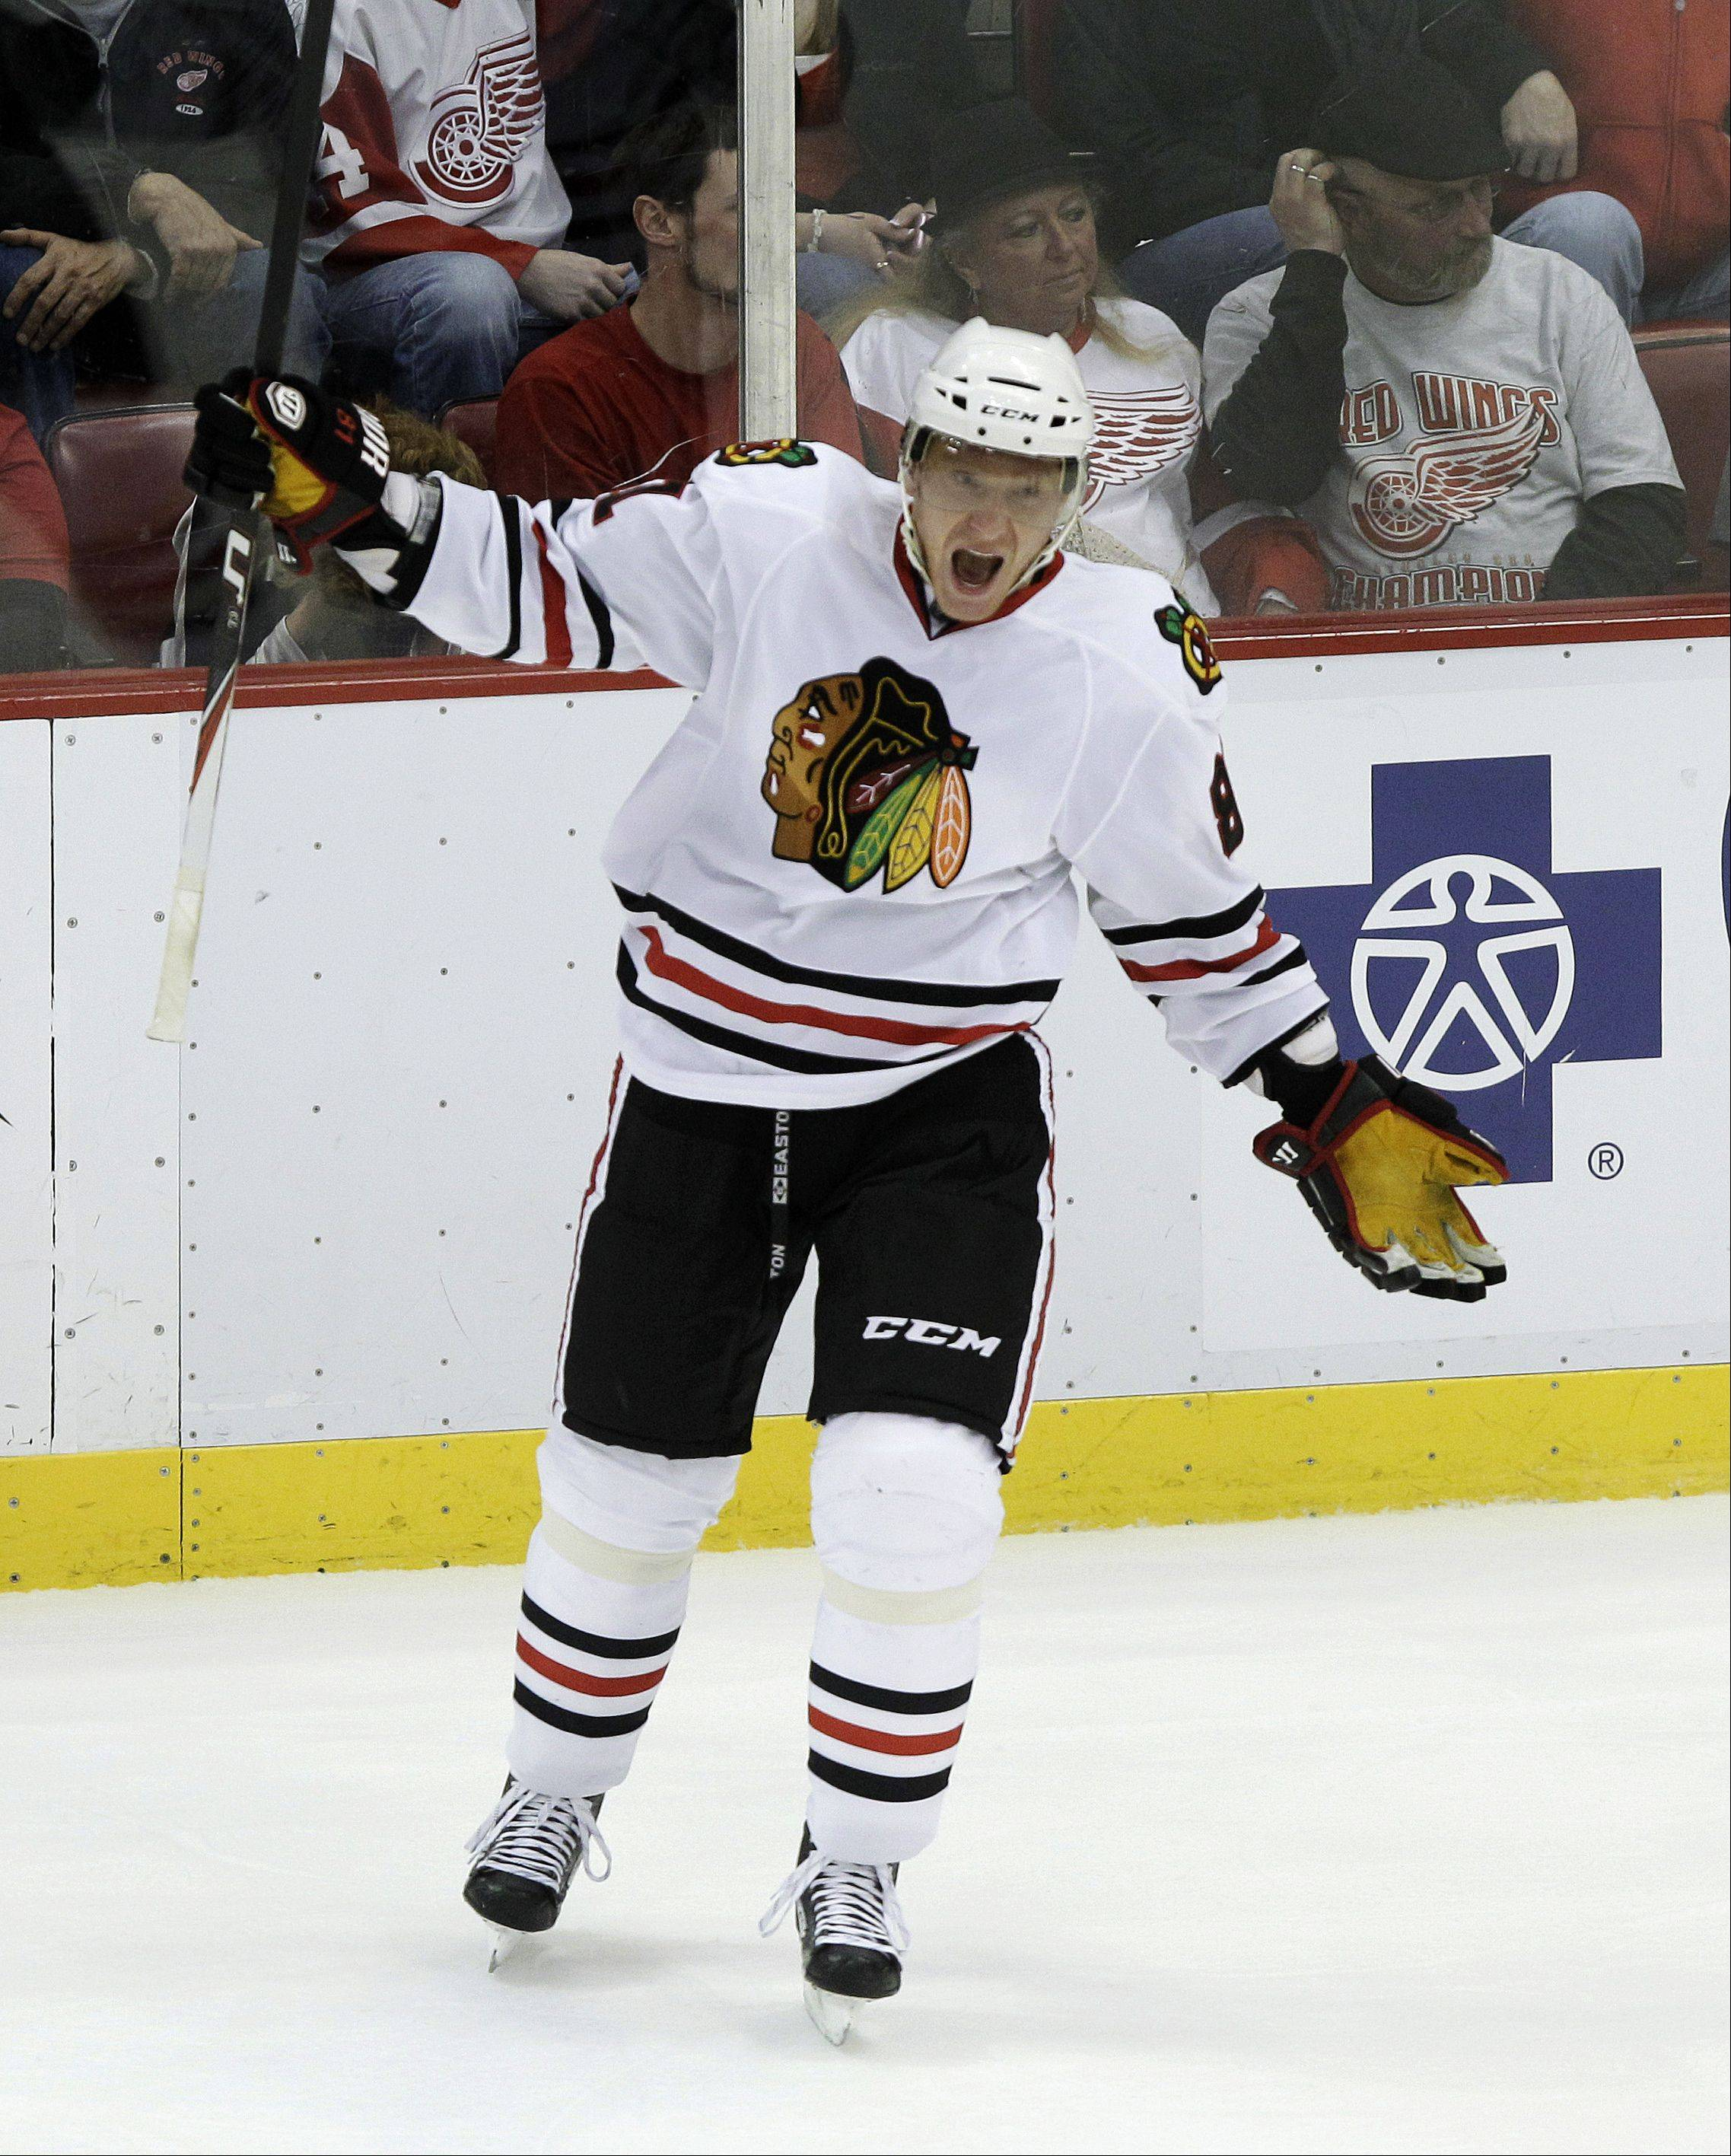 Verdi: Like Sandberg & Payton, Hossa now Chicago icon